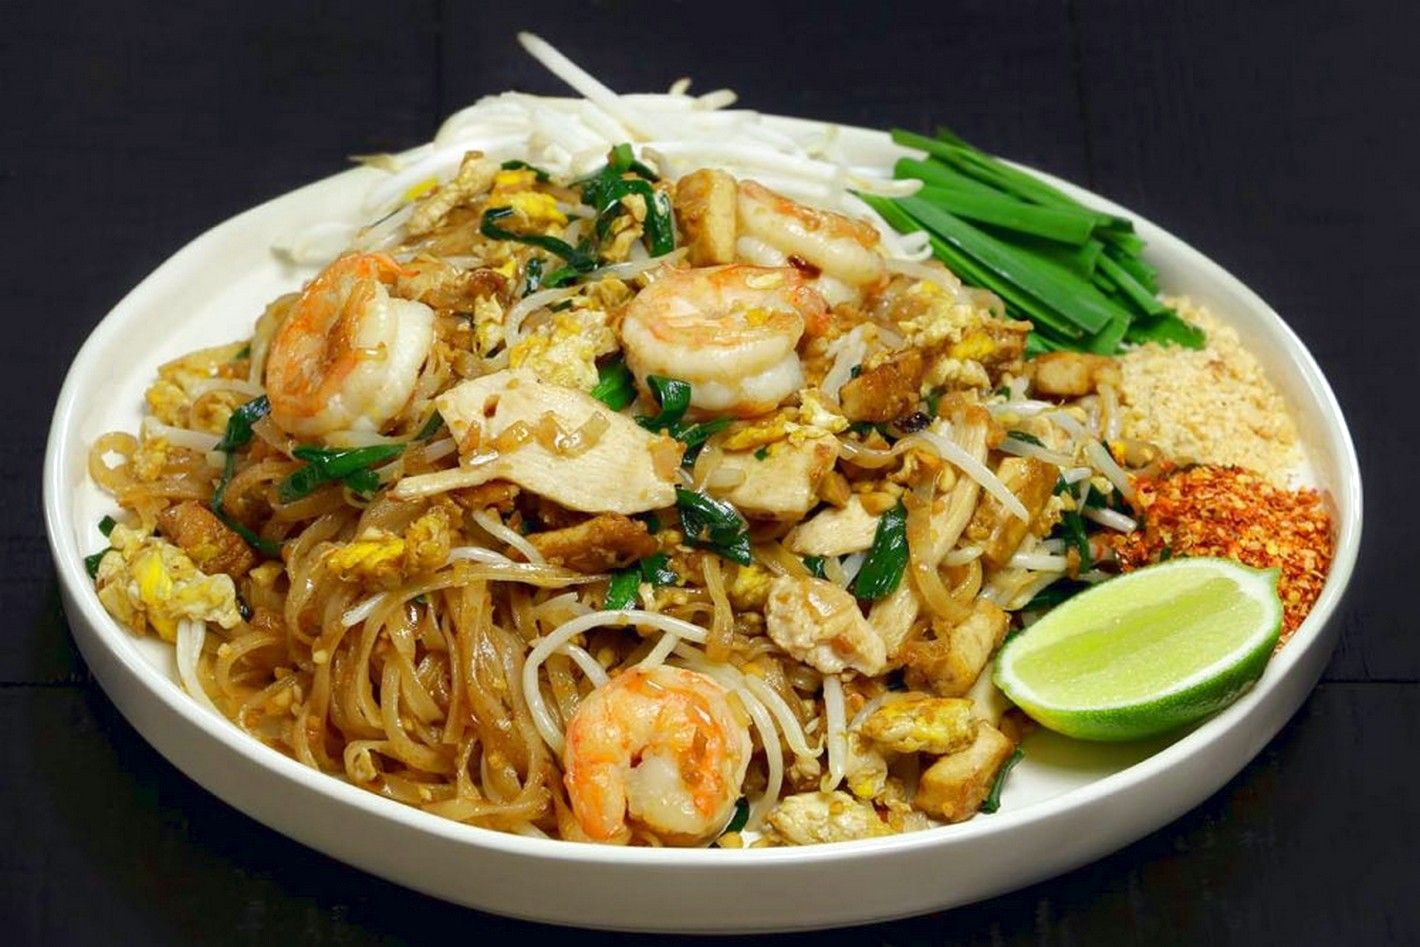 Chicken pad thai food recipes asian inspired pinterest thai chicken pad thai food recipes forumfinder Image collections